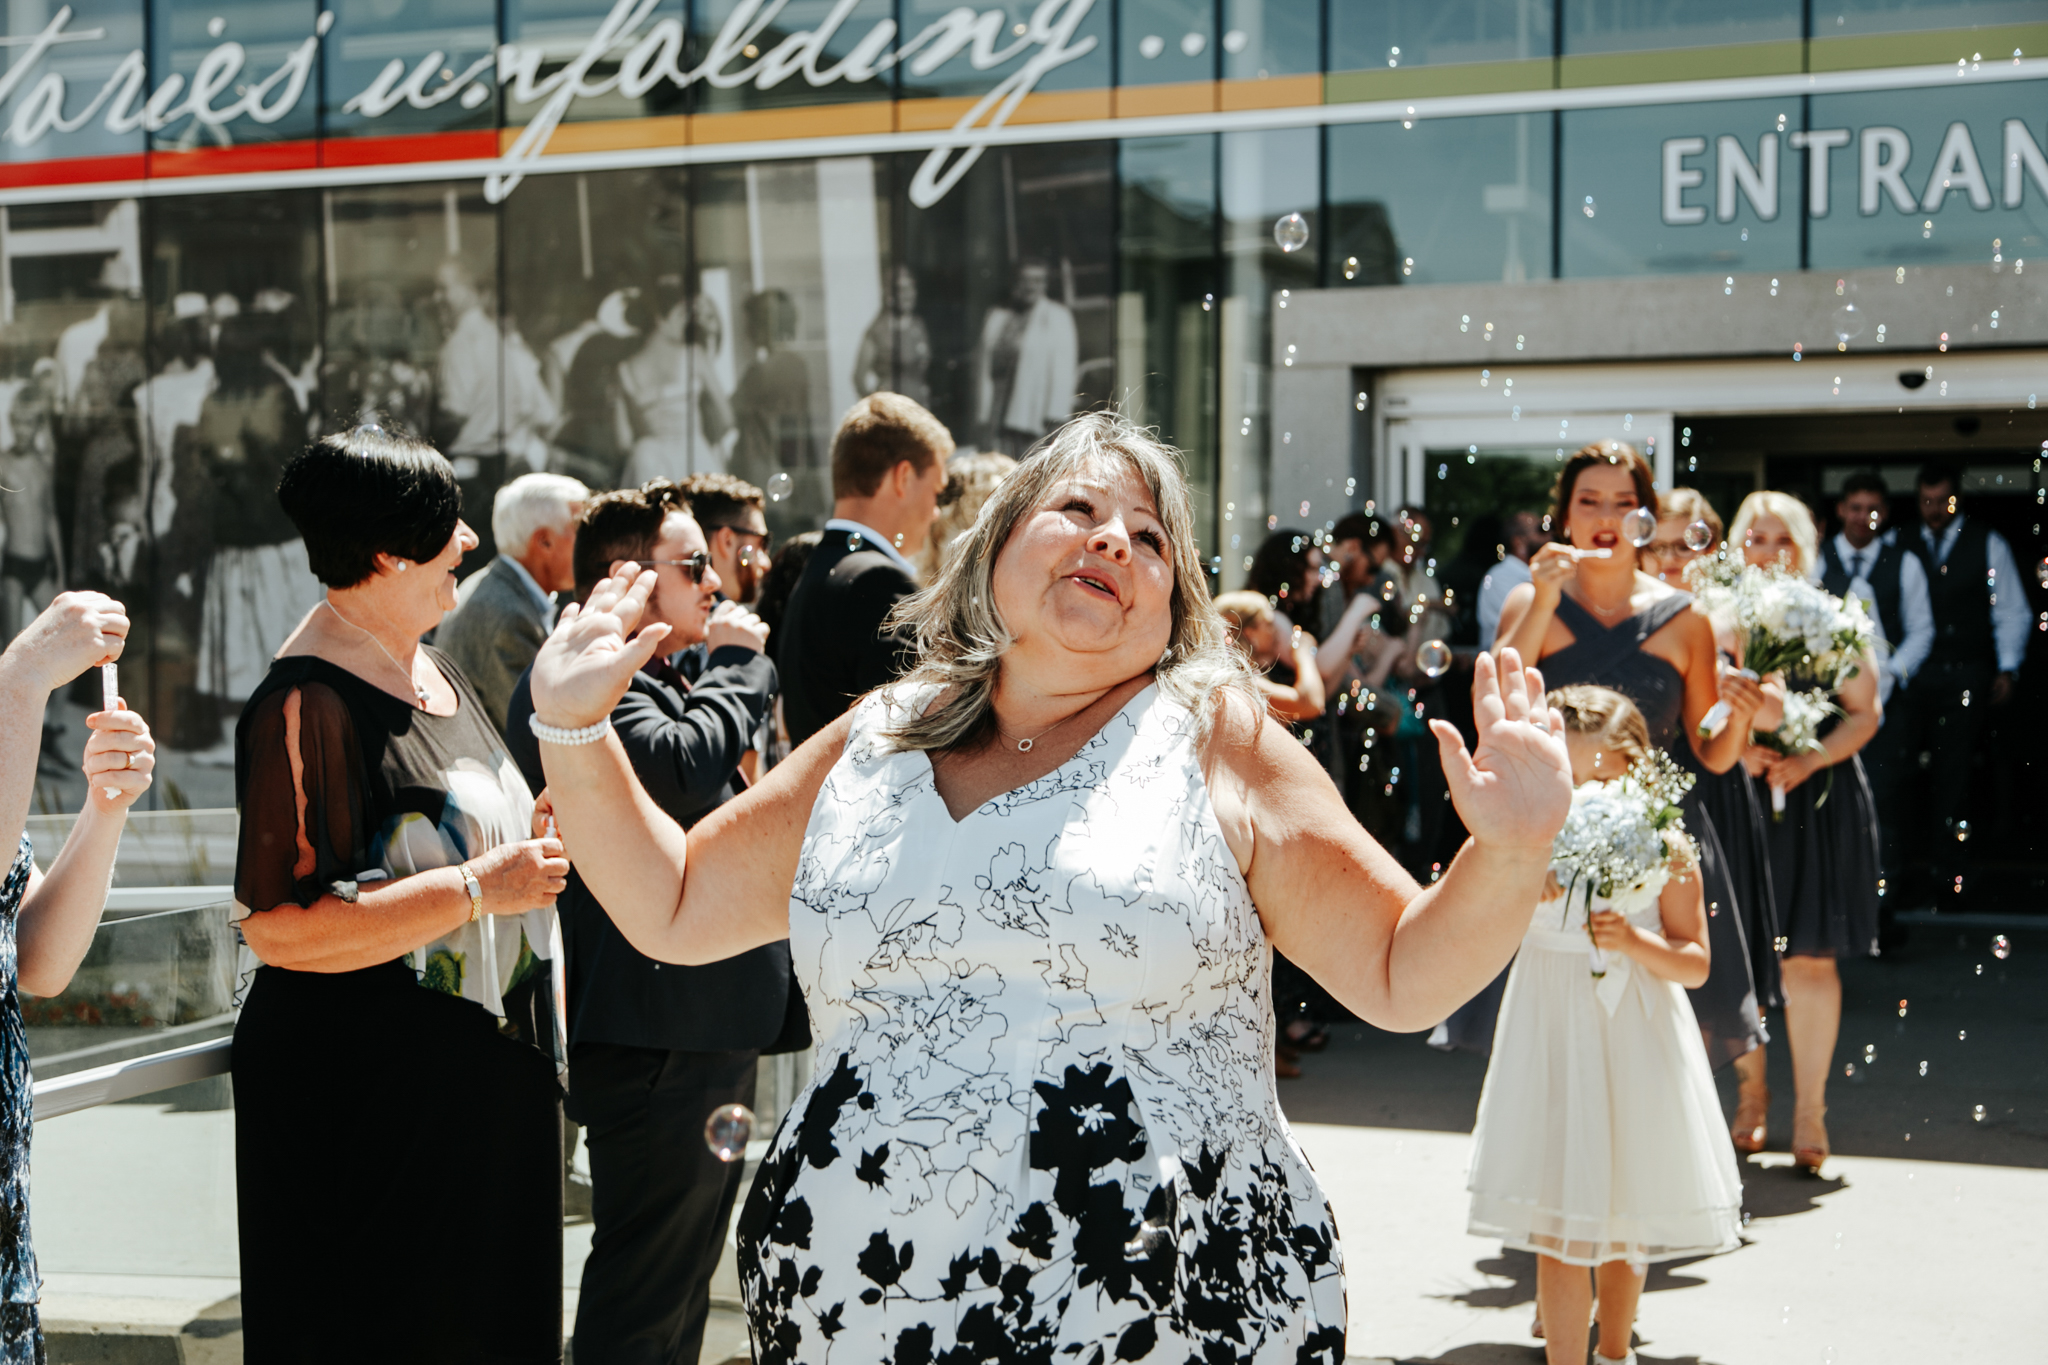 lethbridge-wedding-photographer-love-and-be-loved-photography-trent-danielle-galt-reception-picture-image-photo-66.jpg